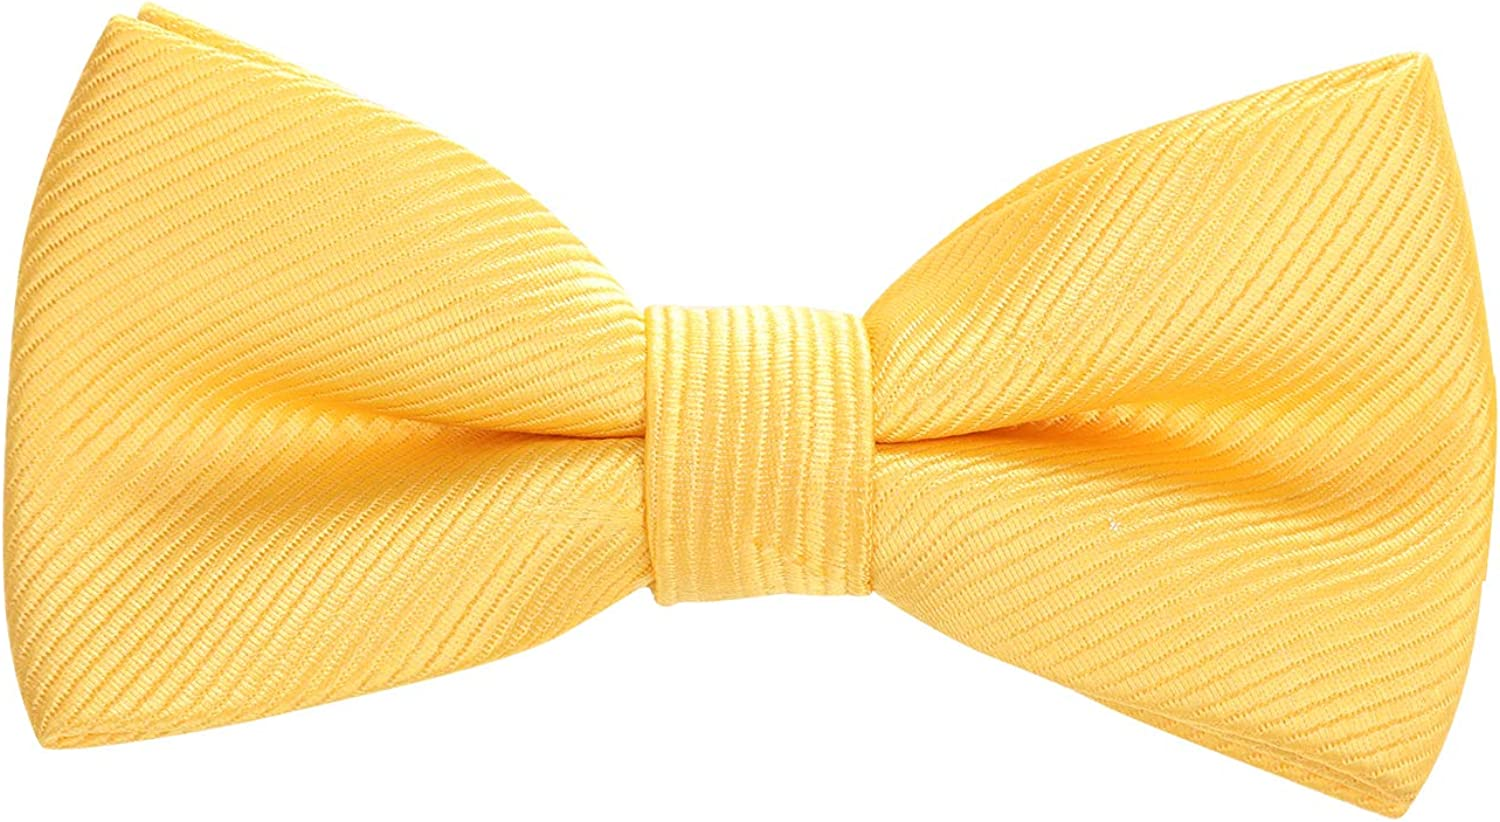 Kids Suspender Bow Tie Sets Adjustable Braces With Bowtie Gift Idea for Boys and Girls by WELROG Yellow